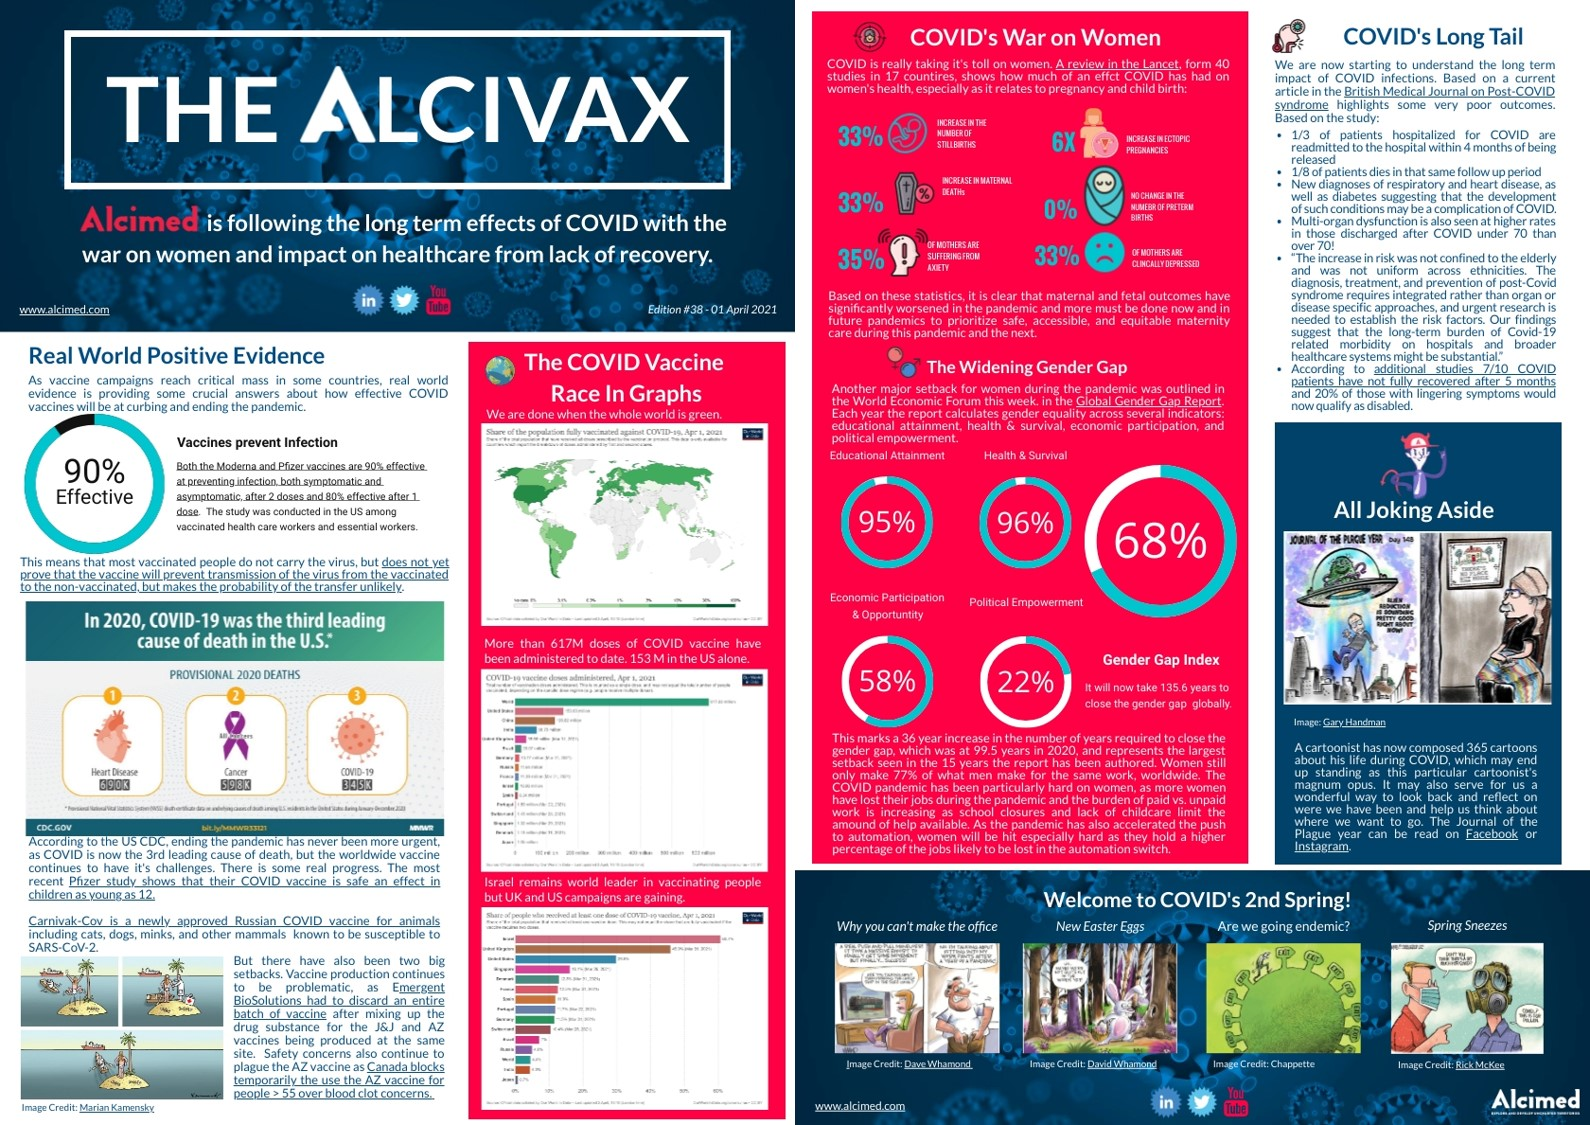 Alcivax#38-logbook-article-Alcimed-covid19-coronavirus